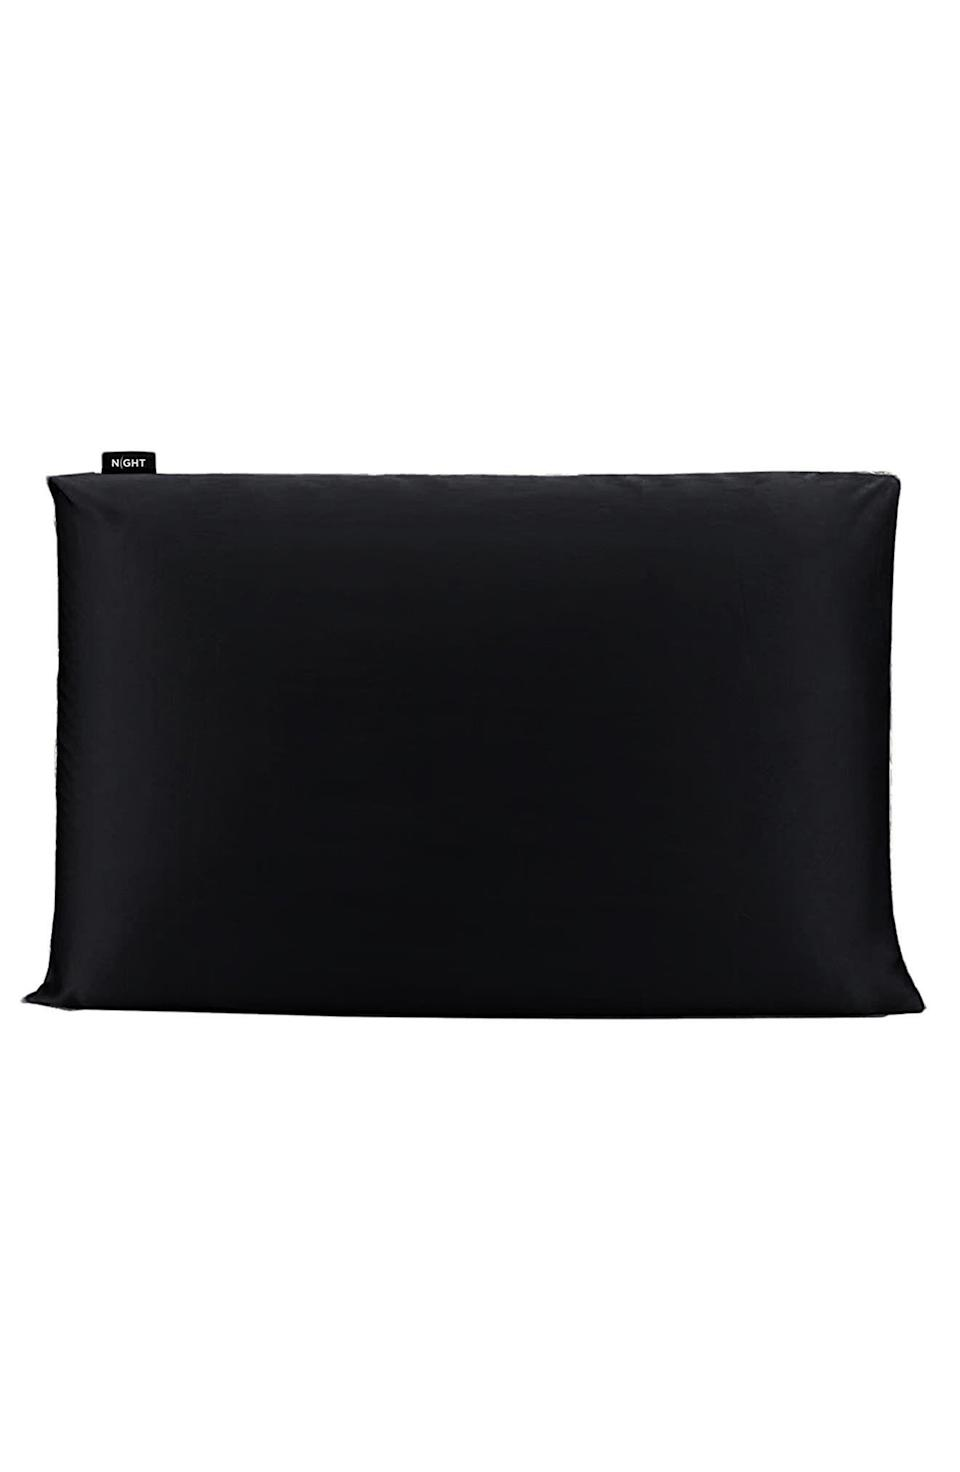 """<p><strong>NIGHT BEAUTY PILLOW</strong></p><p>nordstrom.com</p><p><a href=""""https://go.redirectingat.com?id=74968X1596630&url=https%3A%2F%2Fwww.nordstrom.com%2Fs%2Fnight-trisilk-anti-aging-pillowcase%2F5908595&sref=https%3A%2F%2Fwww.goodhousekeeping.com%2Flife%2Fmoney%2Fg36944754%2Fnordstrom-anniversary-sale-2021%2F"""" rel=""""nofollow noopener"""" target=""""_blank"""" data-ylk=""""slk:Shop Now"""" class=""""link rapid-noclick-resp"""">Shop Now</a></p><p><del>$100.00</del> $66.90 <strong>(33% off)</strong></p><p>Let Trisilk help you get your beauty sleep, thanks to its silk blend pillowcases that reduce sleep wrinkles, blemishes and bedhead all while you're counting sheep. </p>"""